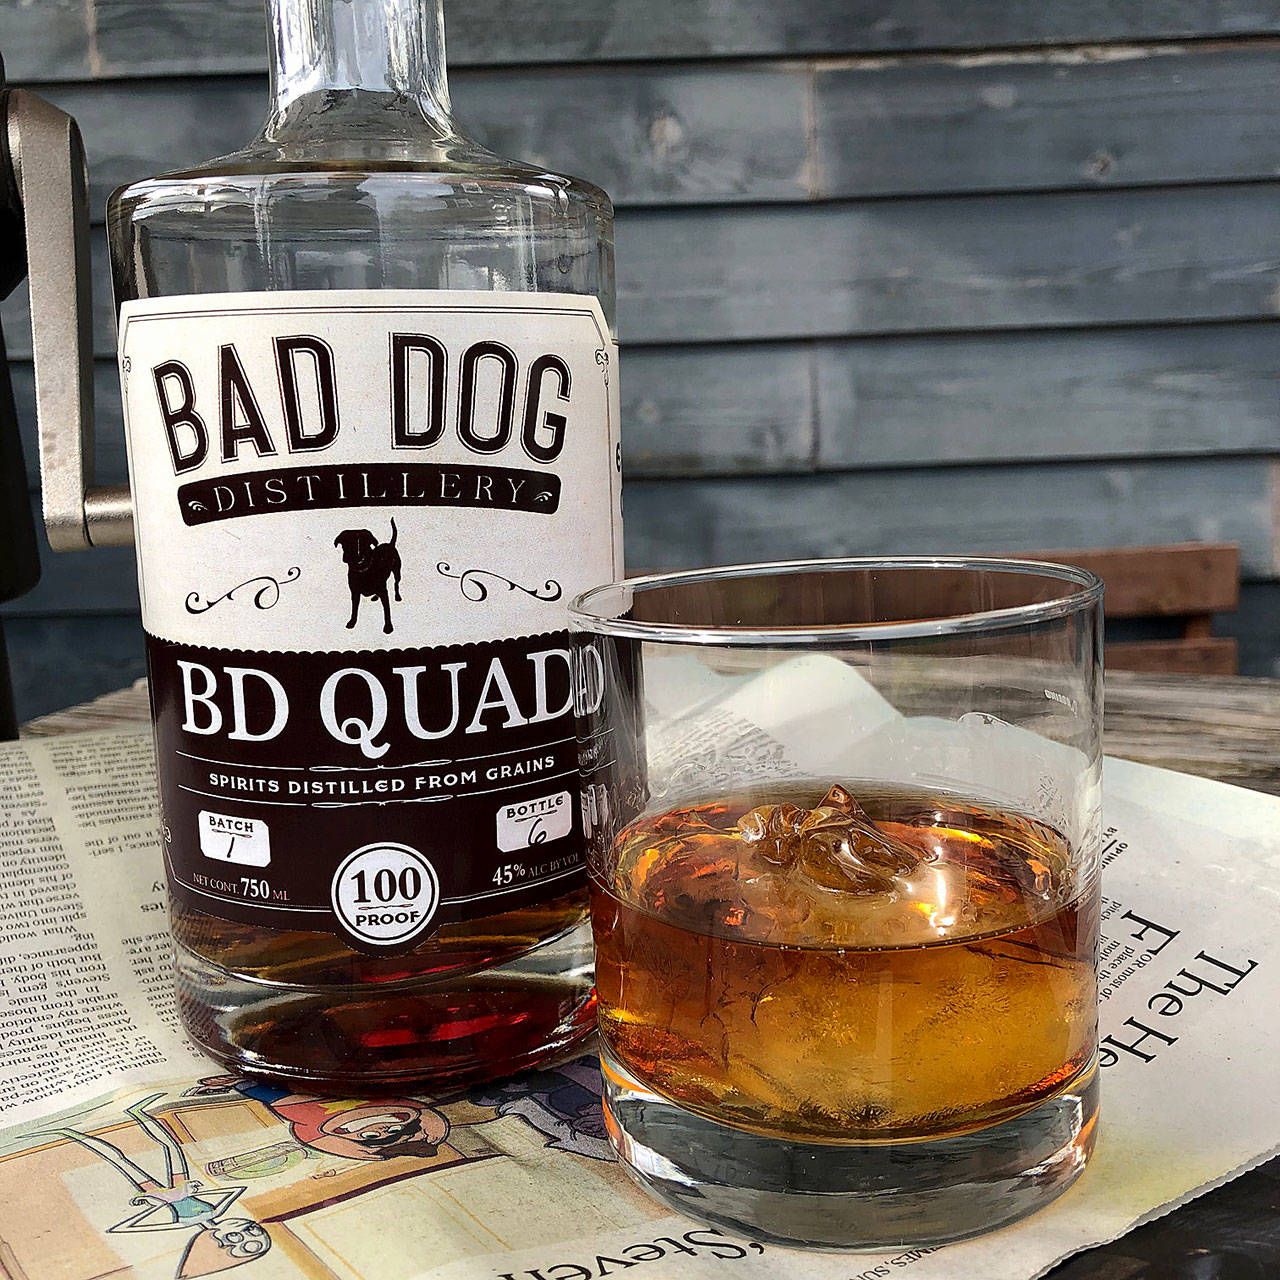 Bad Dog Distillery's BD Quad is made from equal parts rye, corn, wheat and barley. (Aaron Swaney)